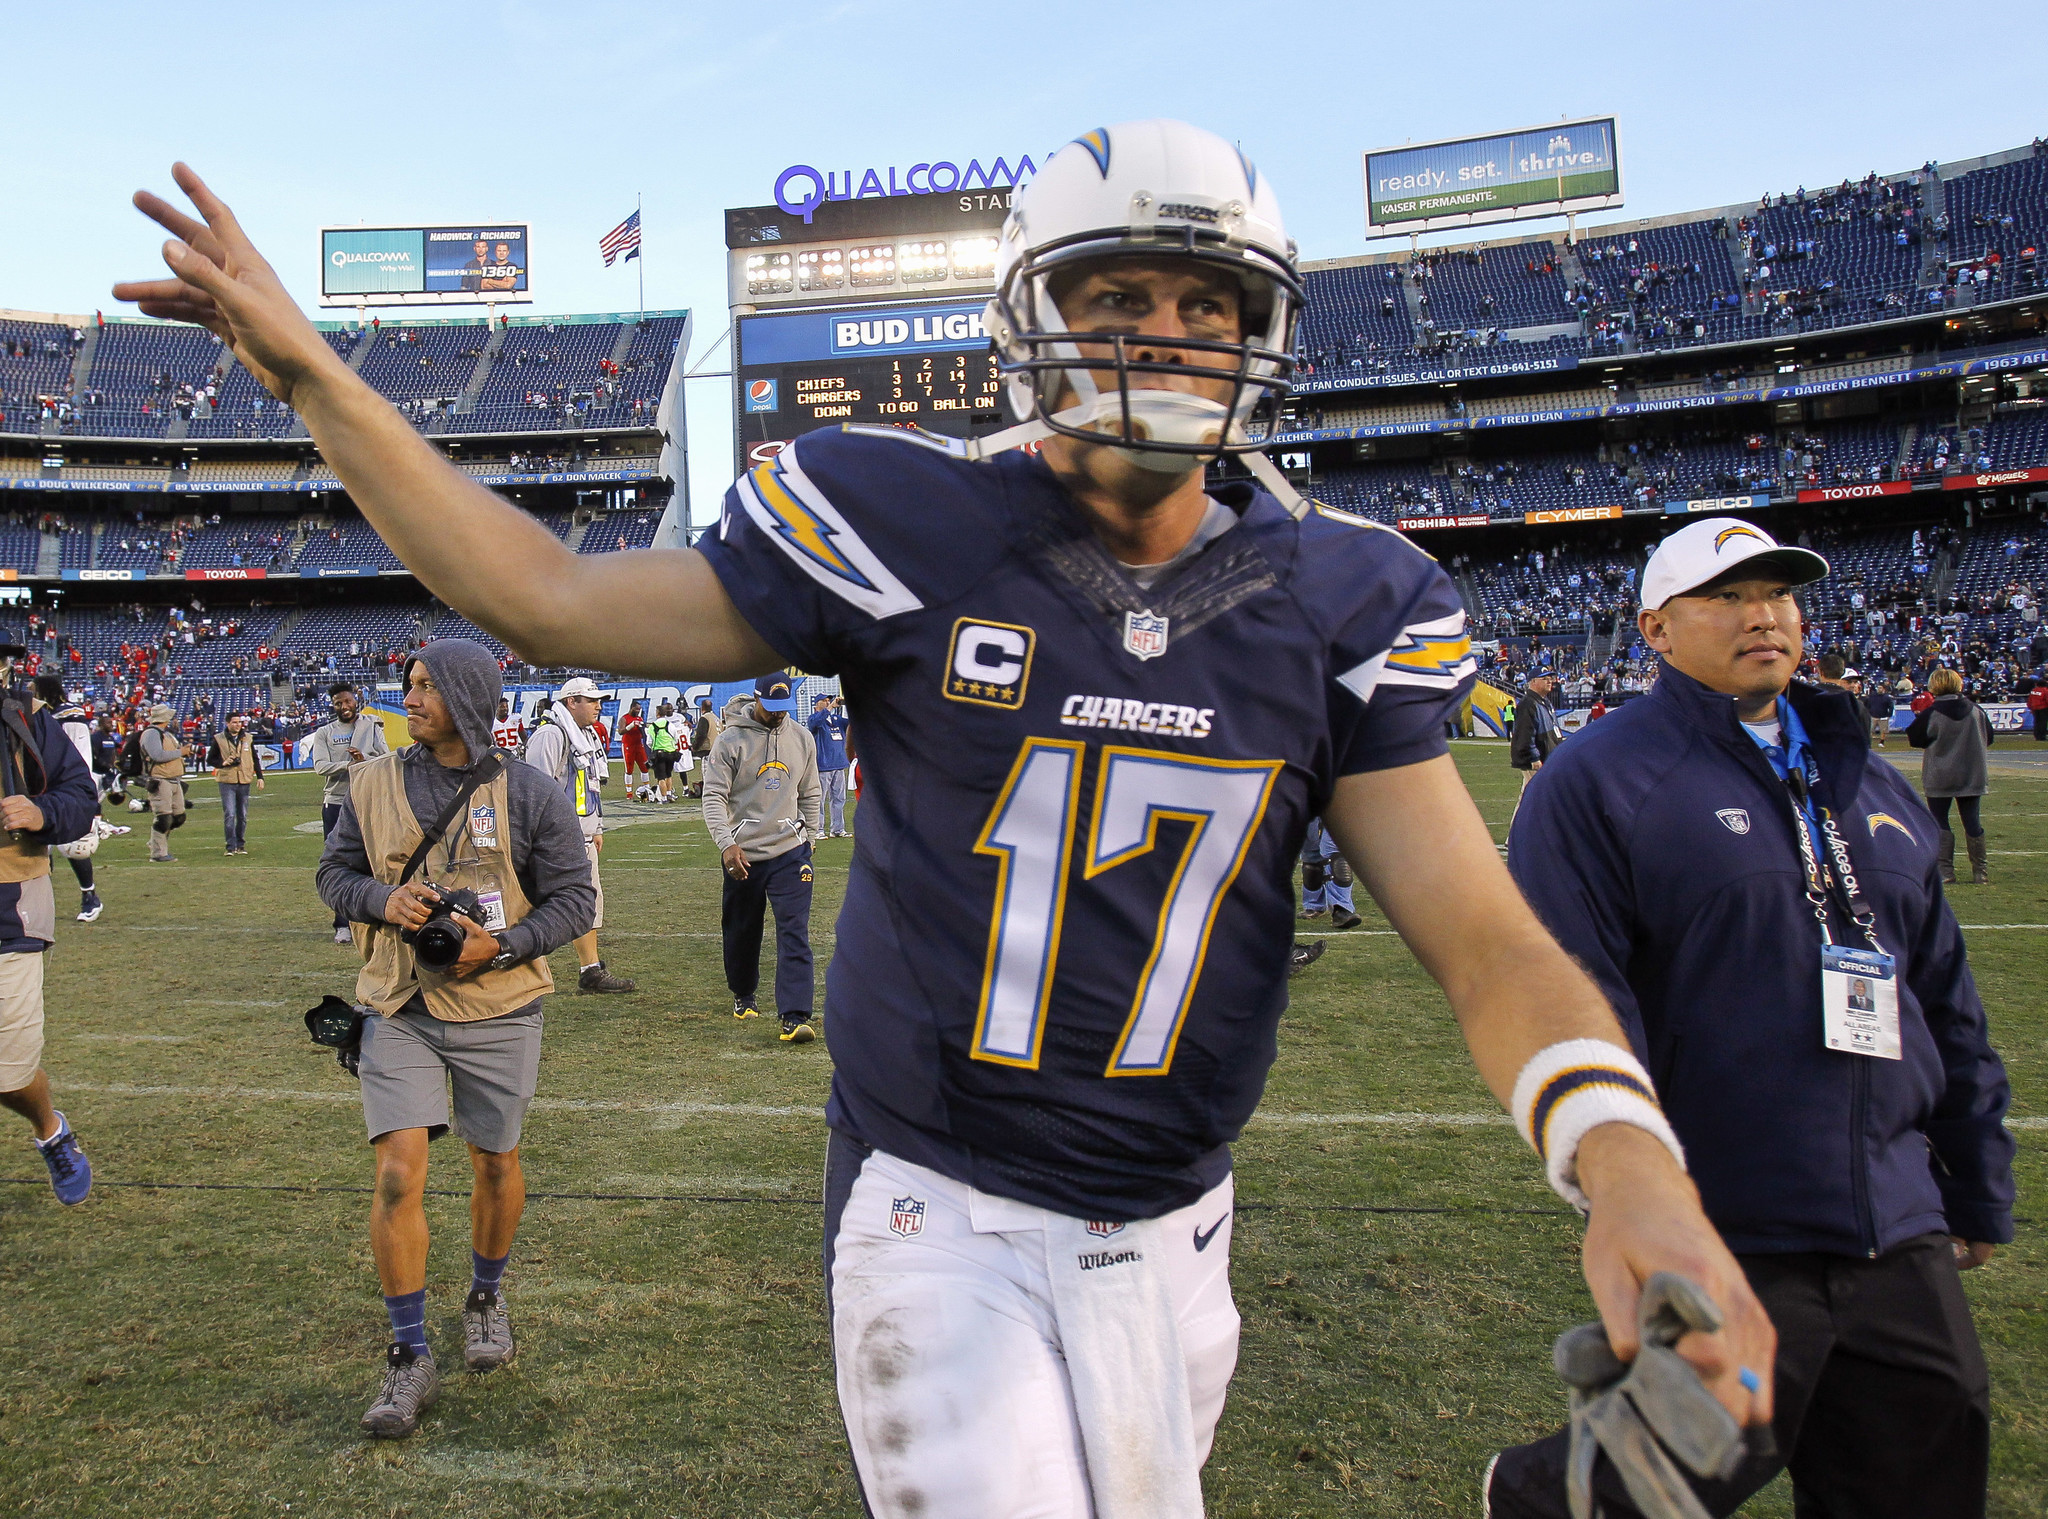 Sd-sp-canepa-chargers-qb-draft-20170320